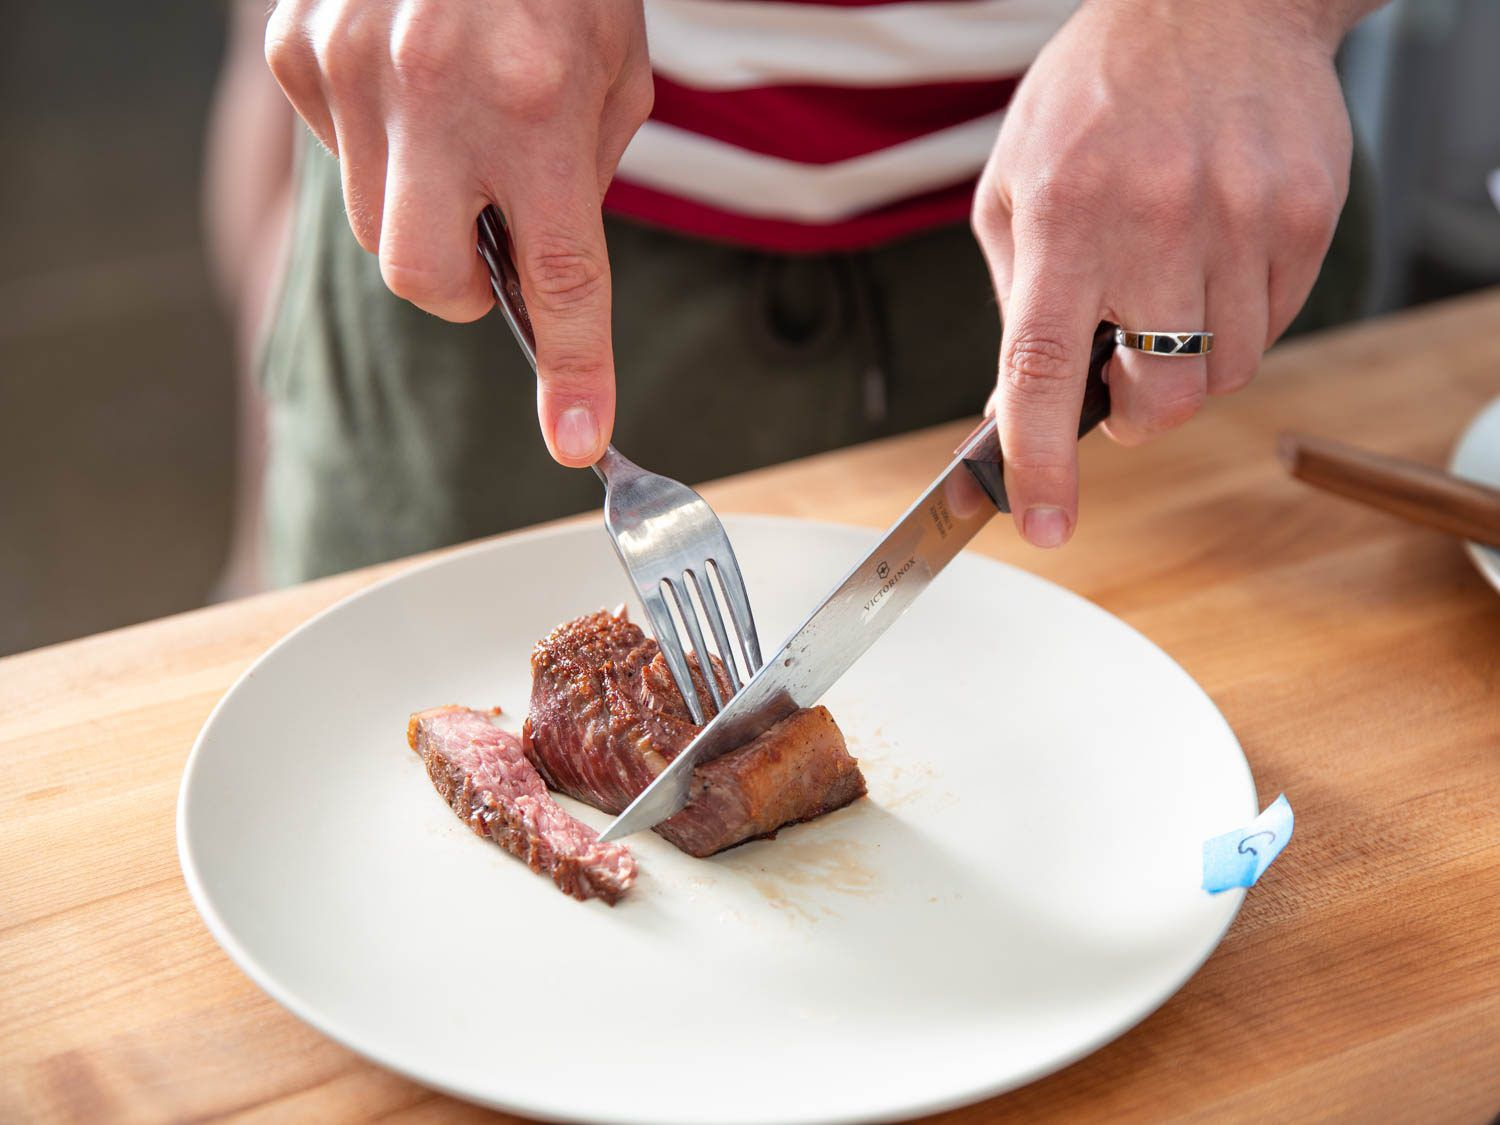 A left-handed person slicing into a strip steak.